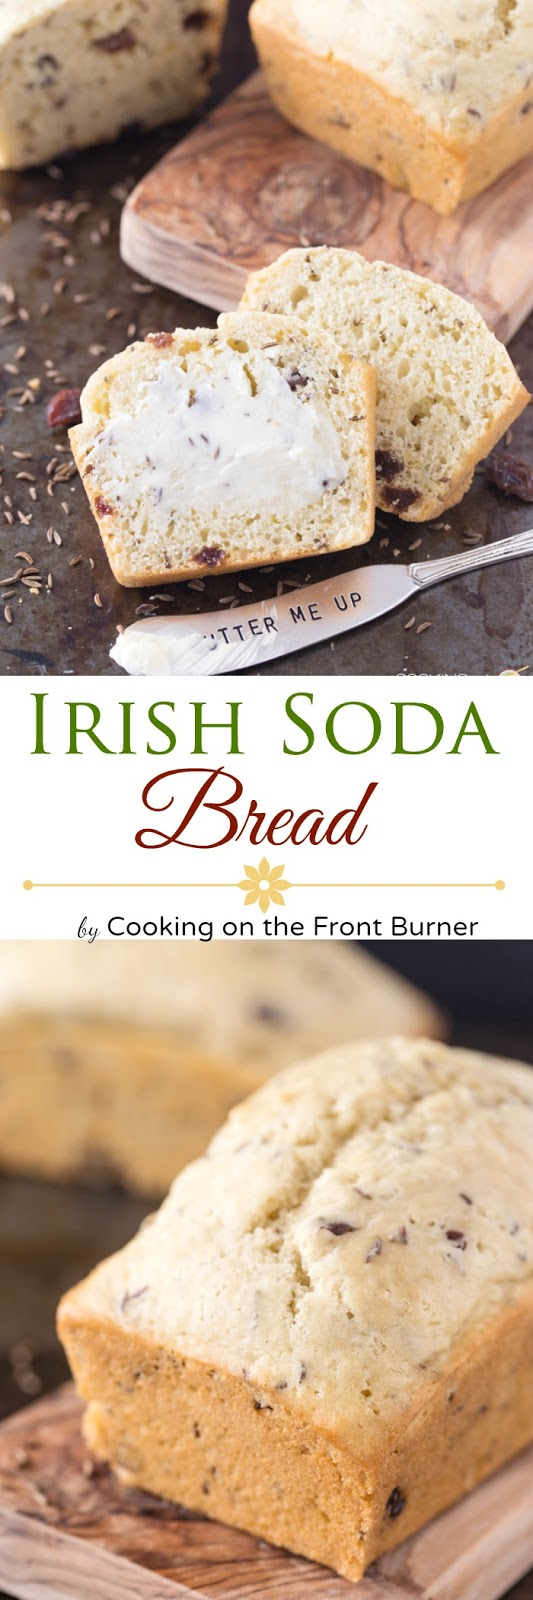 Irish Soda Bread | Cooking on the Front Burner